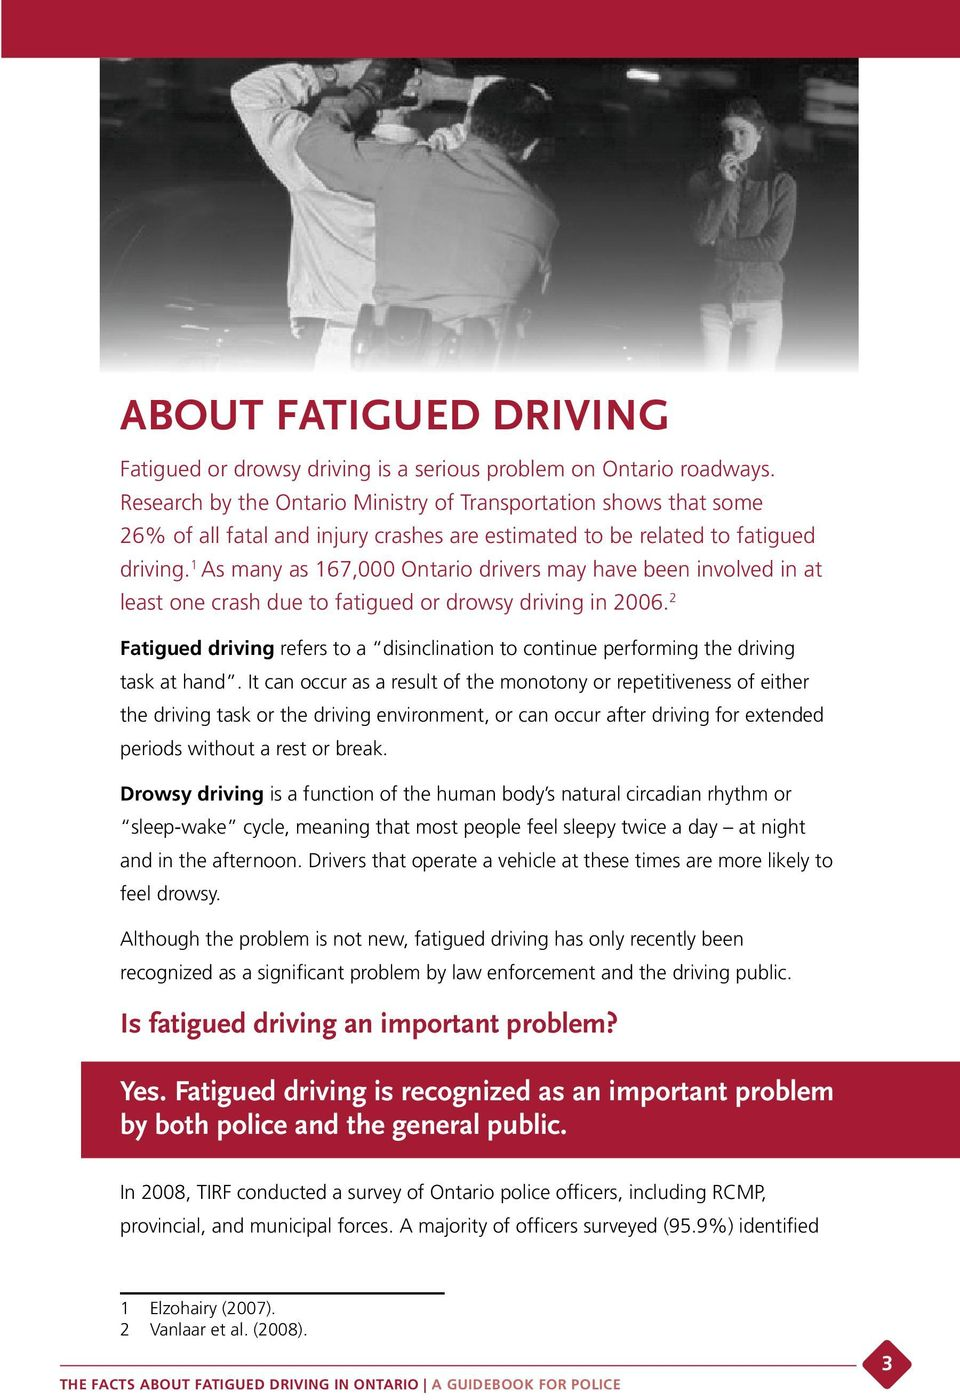 1 As many as 167,000 Ontario drivers may have been involved in at least one crash due to fatigued or drowsy driving in 2006.